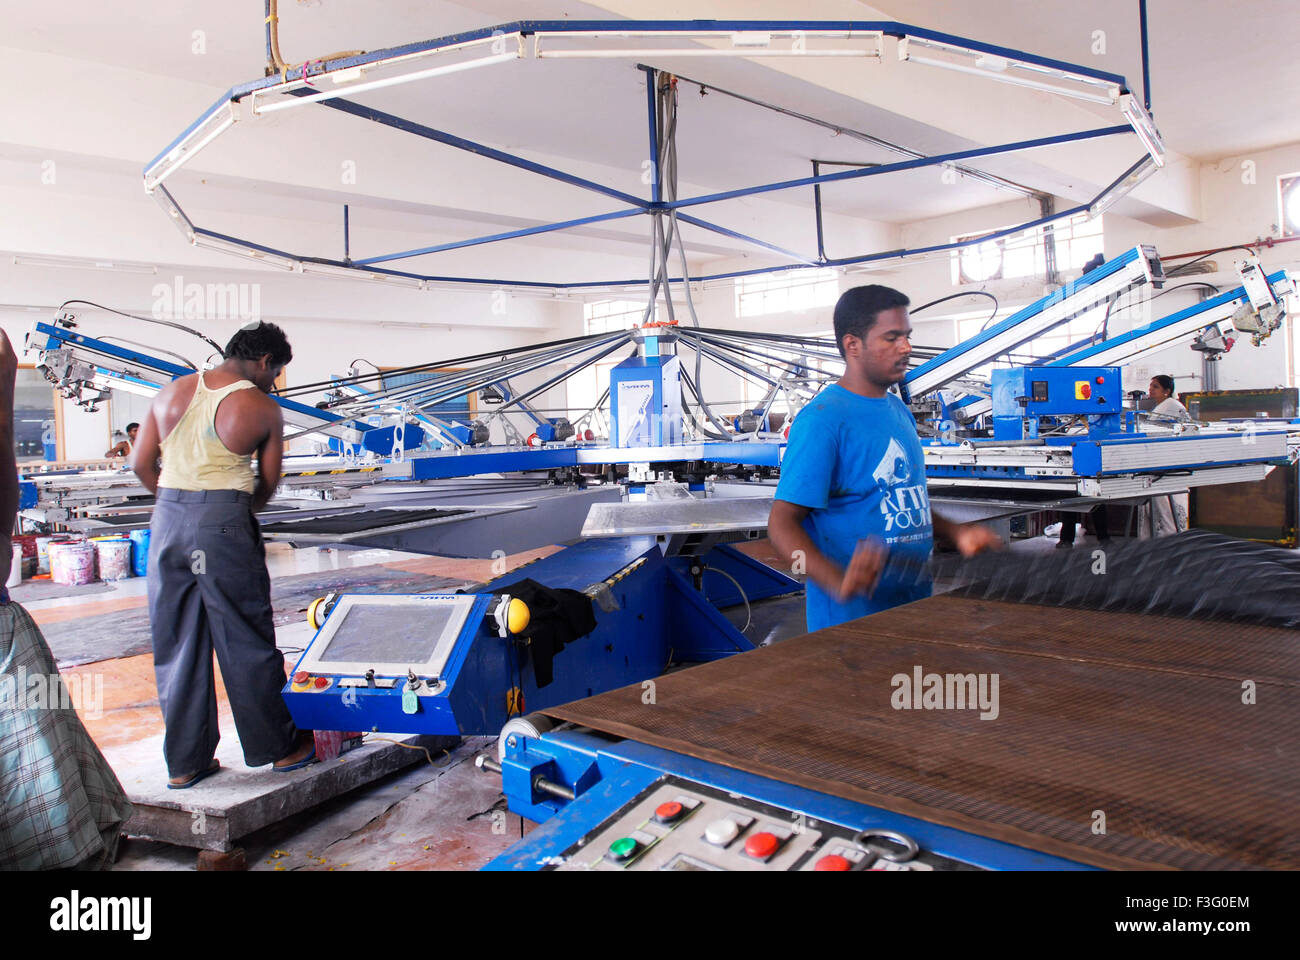 Automatic fabric screen printing machine in a garment industry Stock